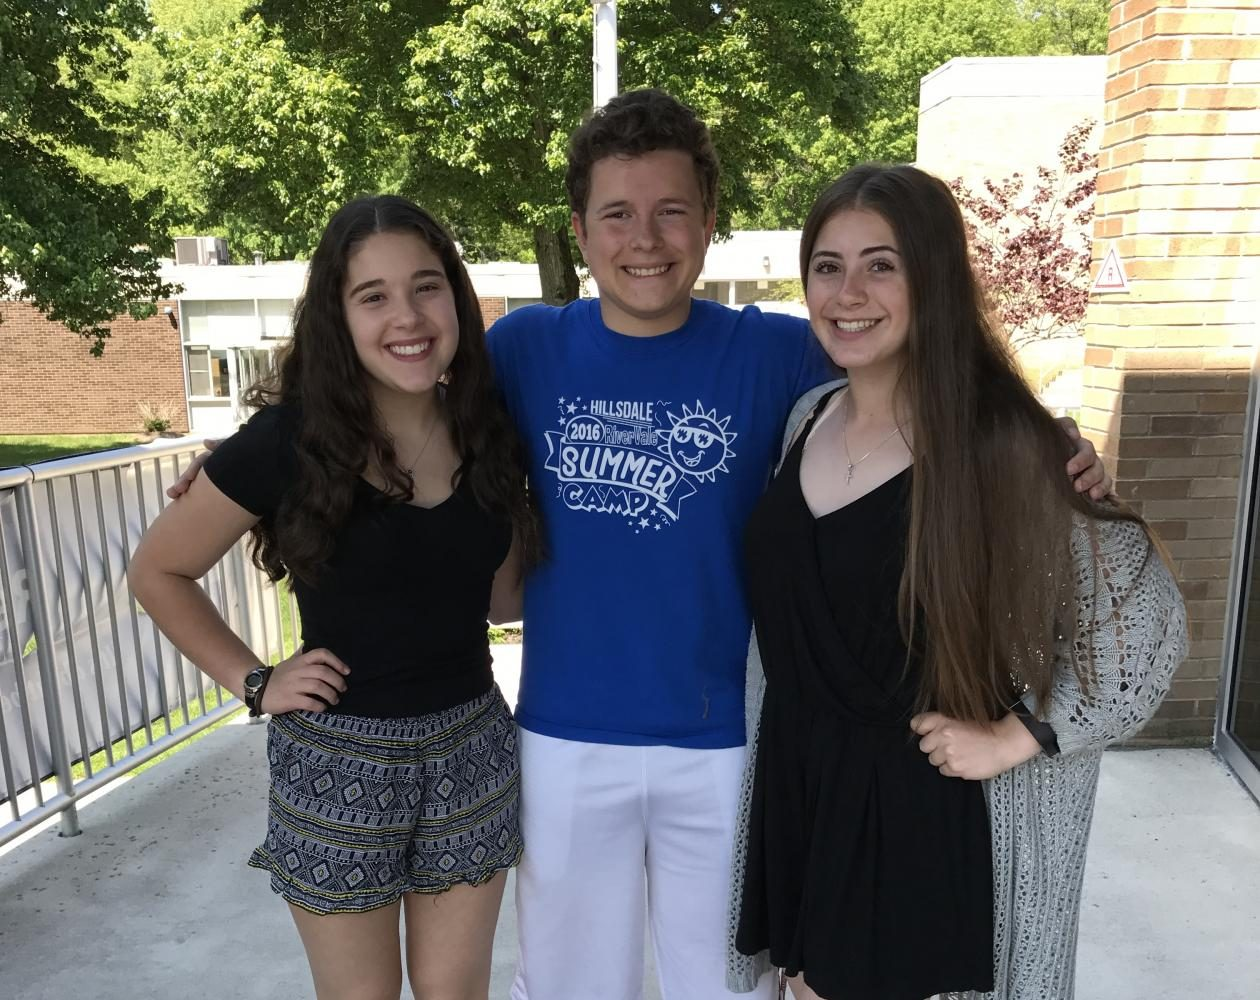 Pictured above (from left): Lauren Cohen, Kyle Comito, and Madison Gallo. The Smoke Signal will transition from Comito as Editor in Chief to Cohen and Gallo both at the helm for the 2017-2018 school year.